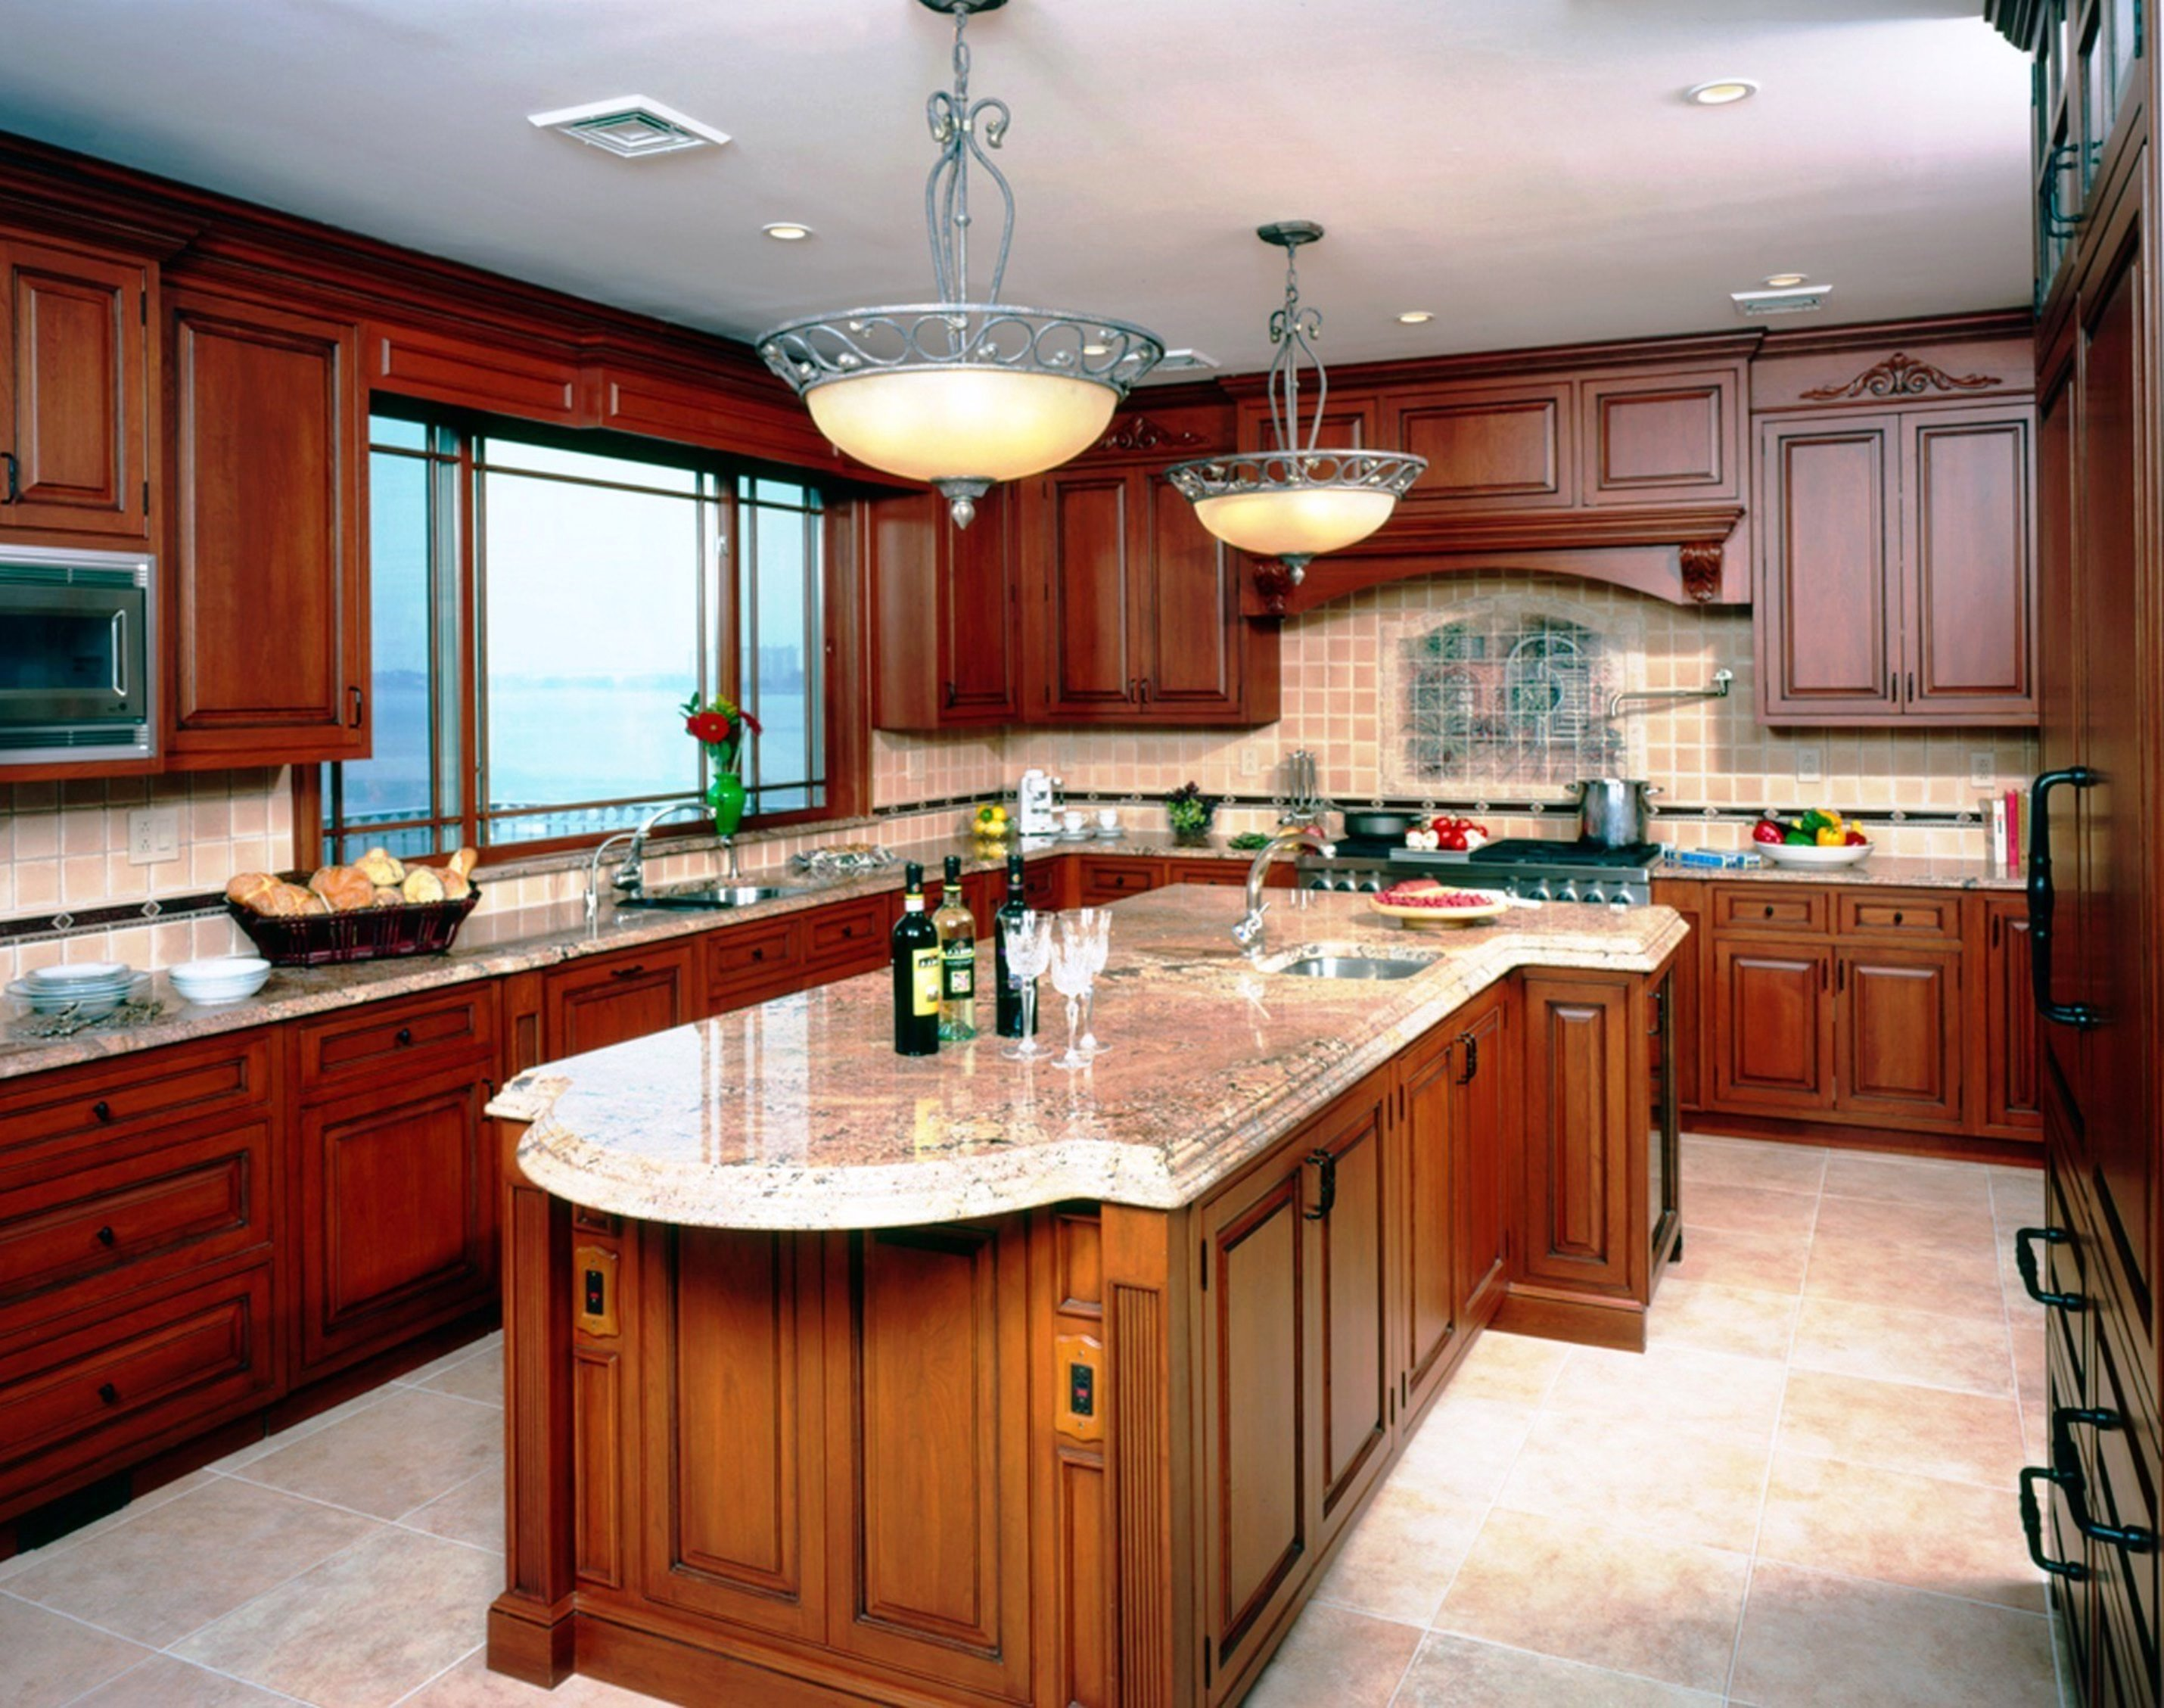 How to Care For Your Stone Countertops?